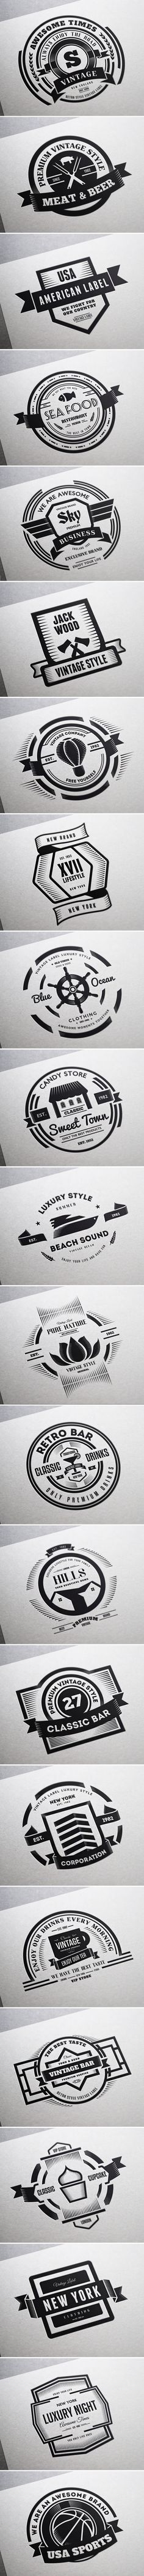 22 Vintage Labels & Badges / Logos / Insignias by Think Big Design, via Behance - ❣ Relicário ❣ - makemyworldburn.tumblr.com